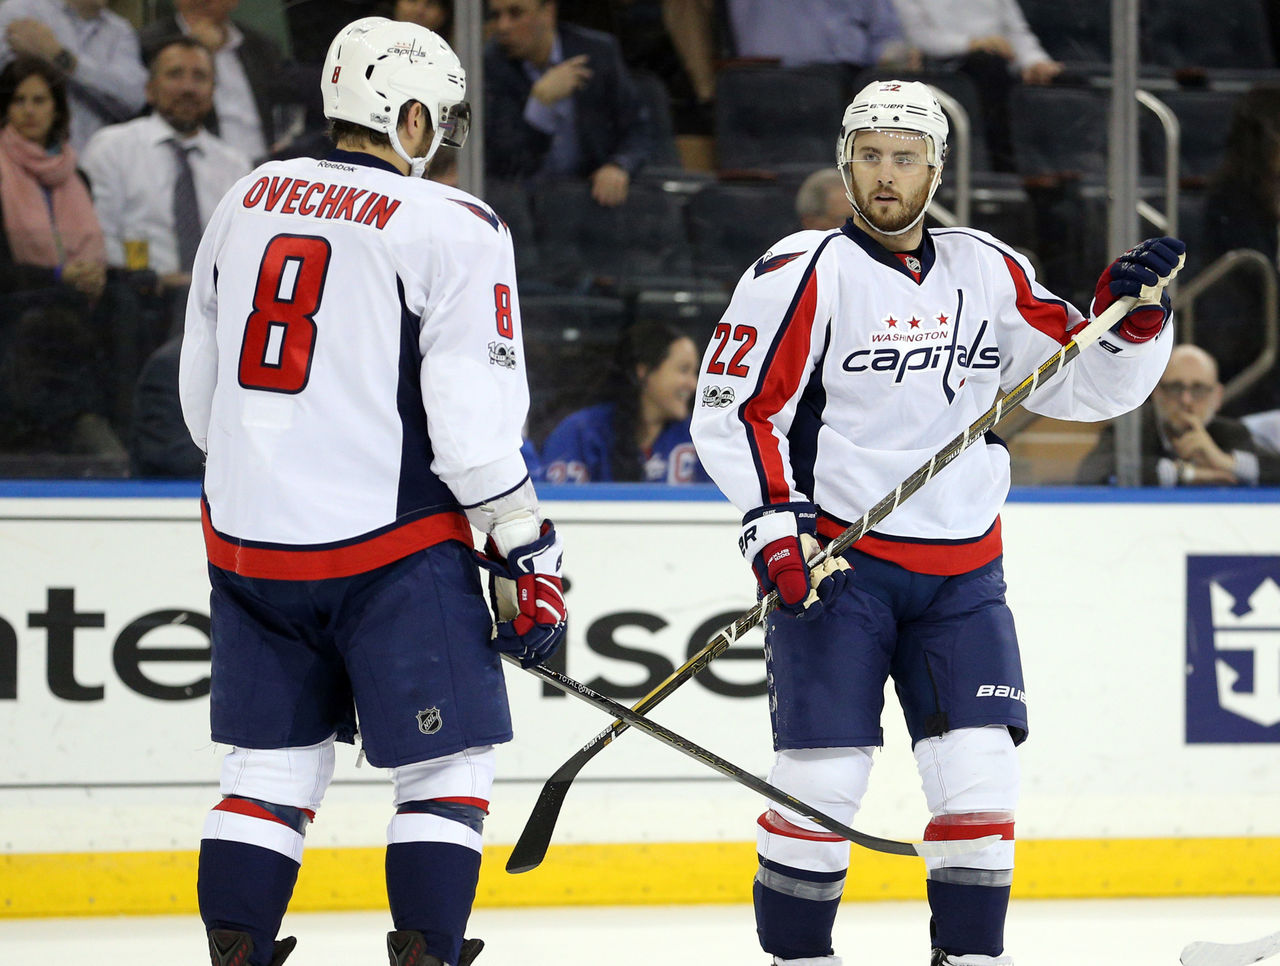 Cropped_2017-03-01t010619z_1614926757_nocid_rtrmadp_3_nhl-washington-capitals-at-new-york-rangers